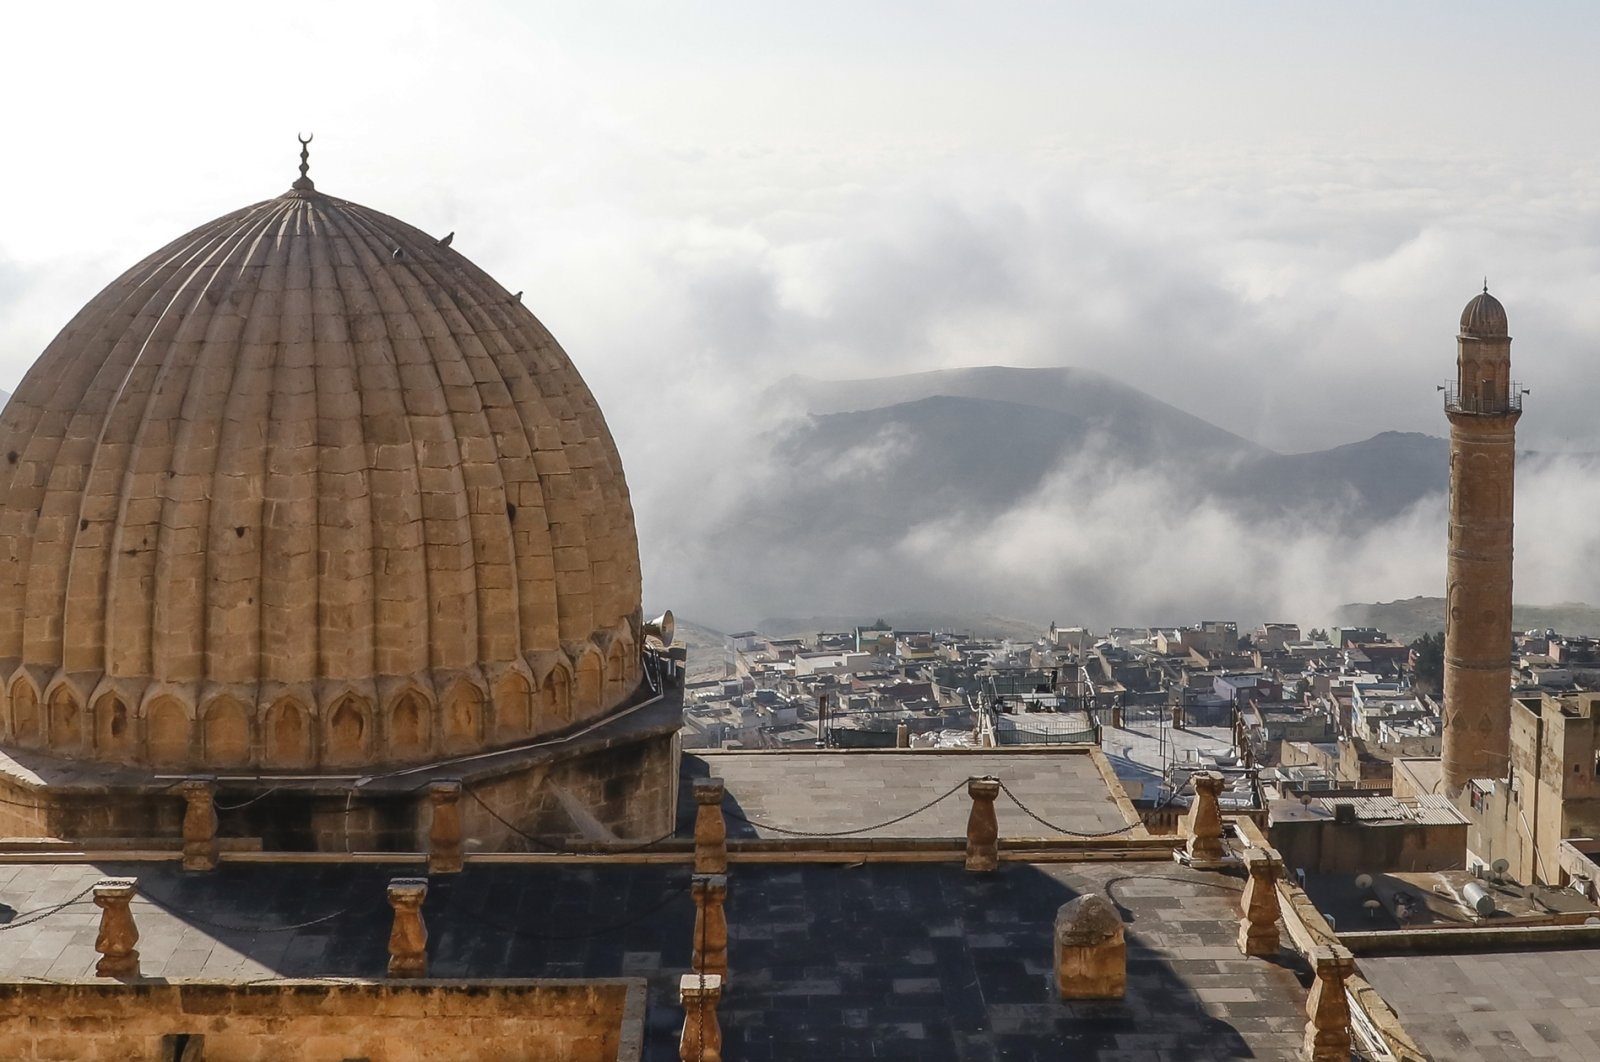 This picture dated March 25, 2021 shows the iconic dome of Mardin's 12th century Grand Mosque (Ulu Cami) overlooking the Mesopotamian plains, in southeastern Turkey. (DHA Photo)